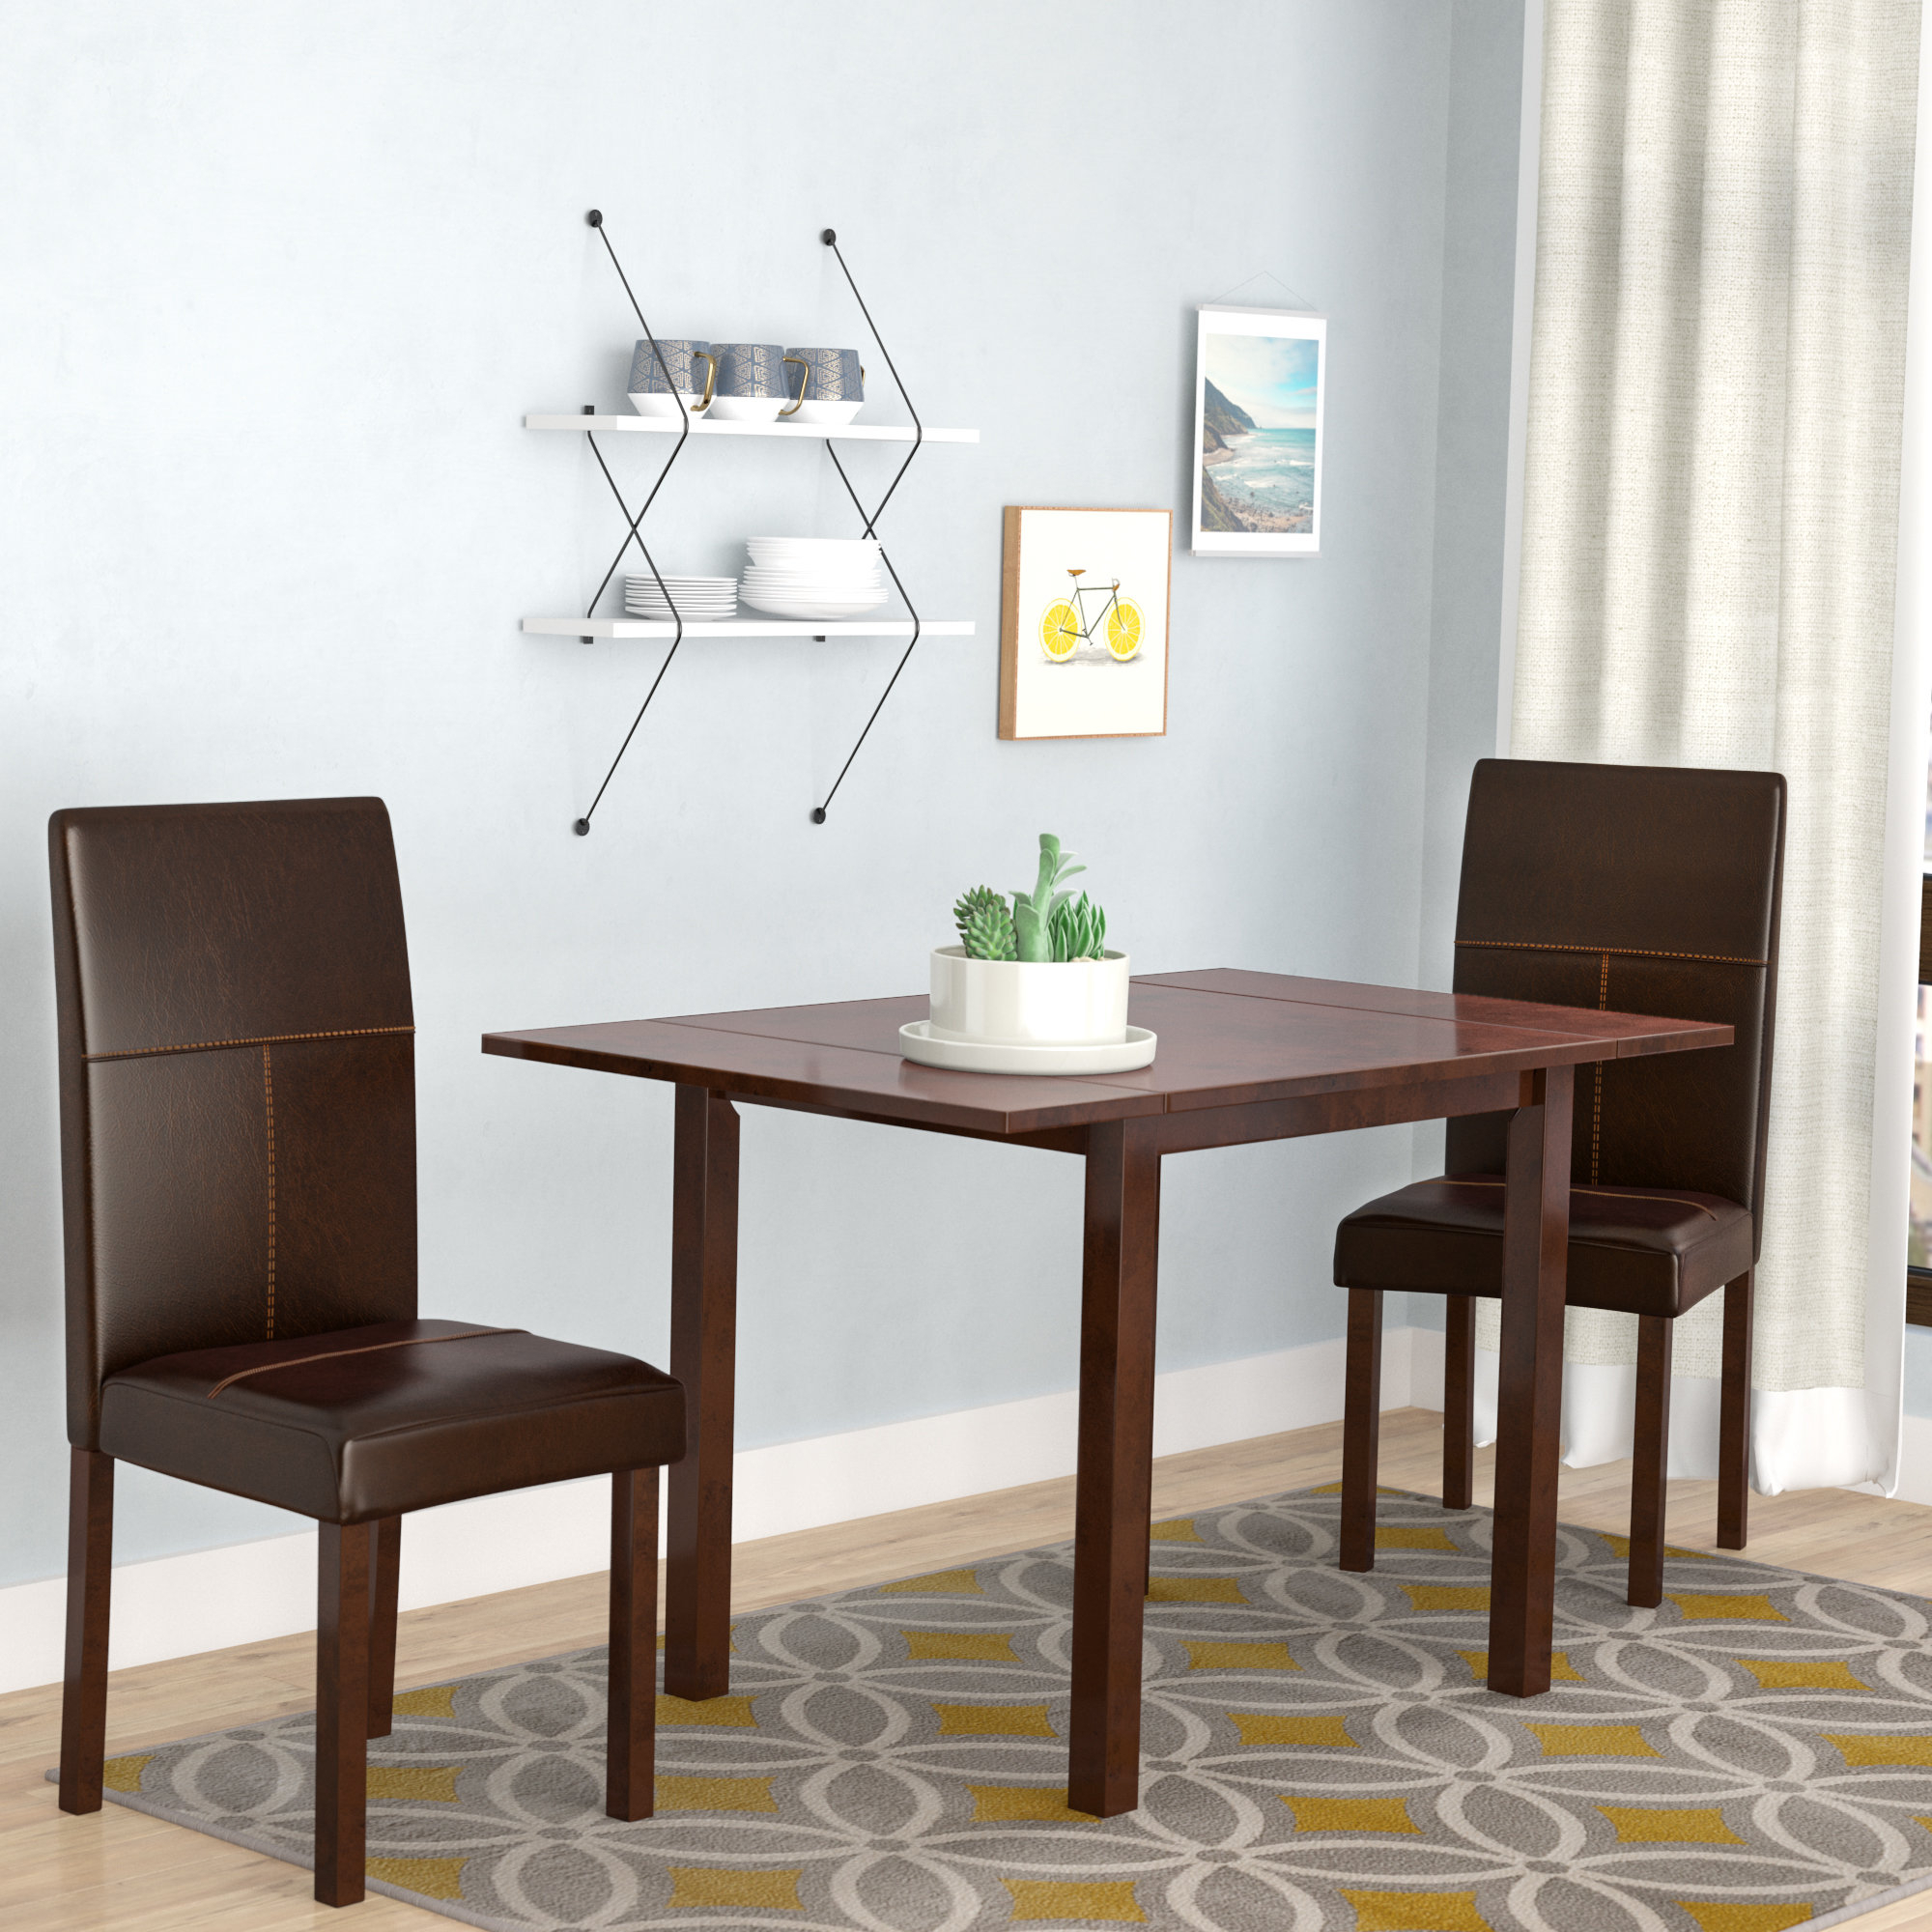 Lorenzen 3 Piece Dining Set In Most Recently Released Baillie 3 Piece Dining Sets (Photo 3 of 20)